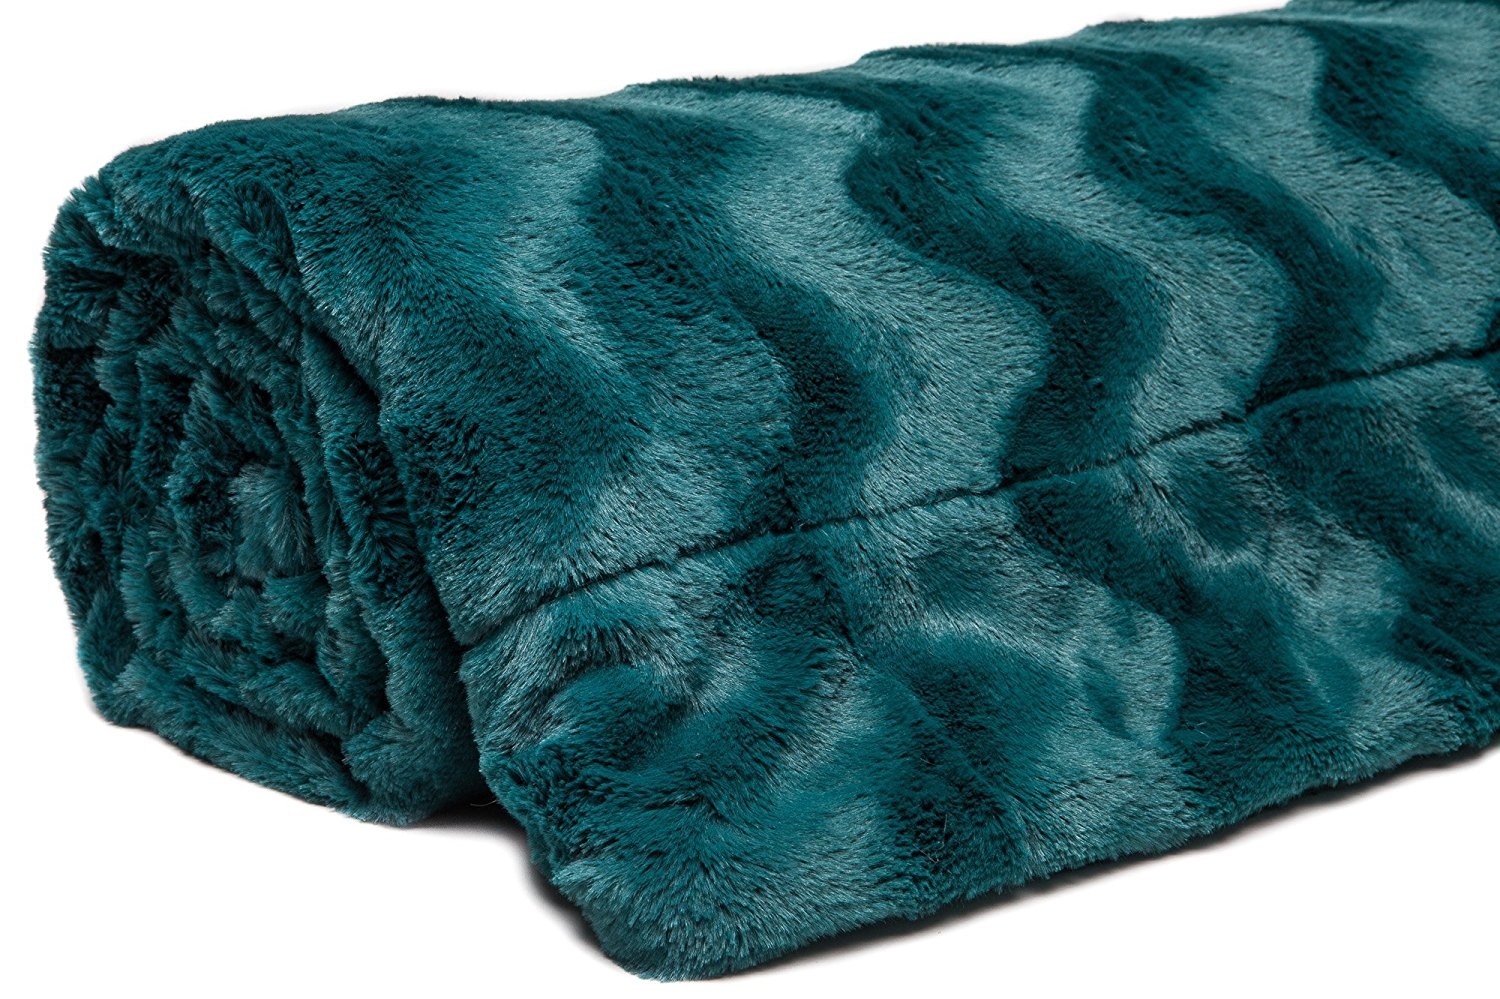 teal-throw-blanket-01